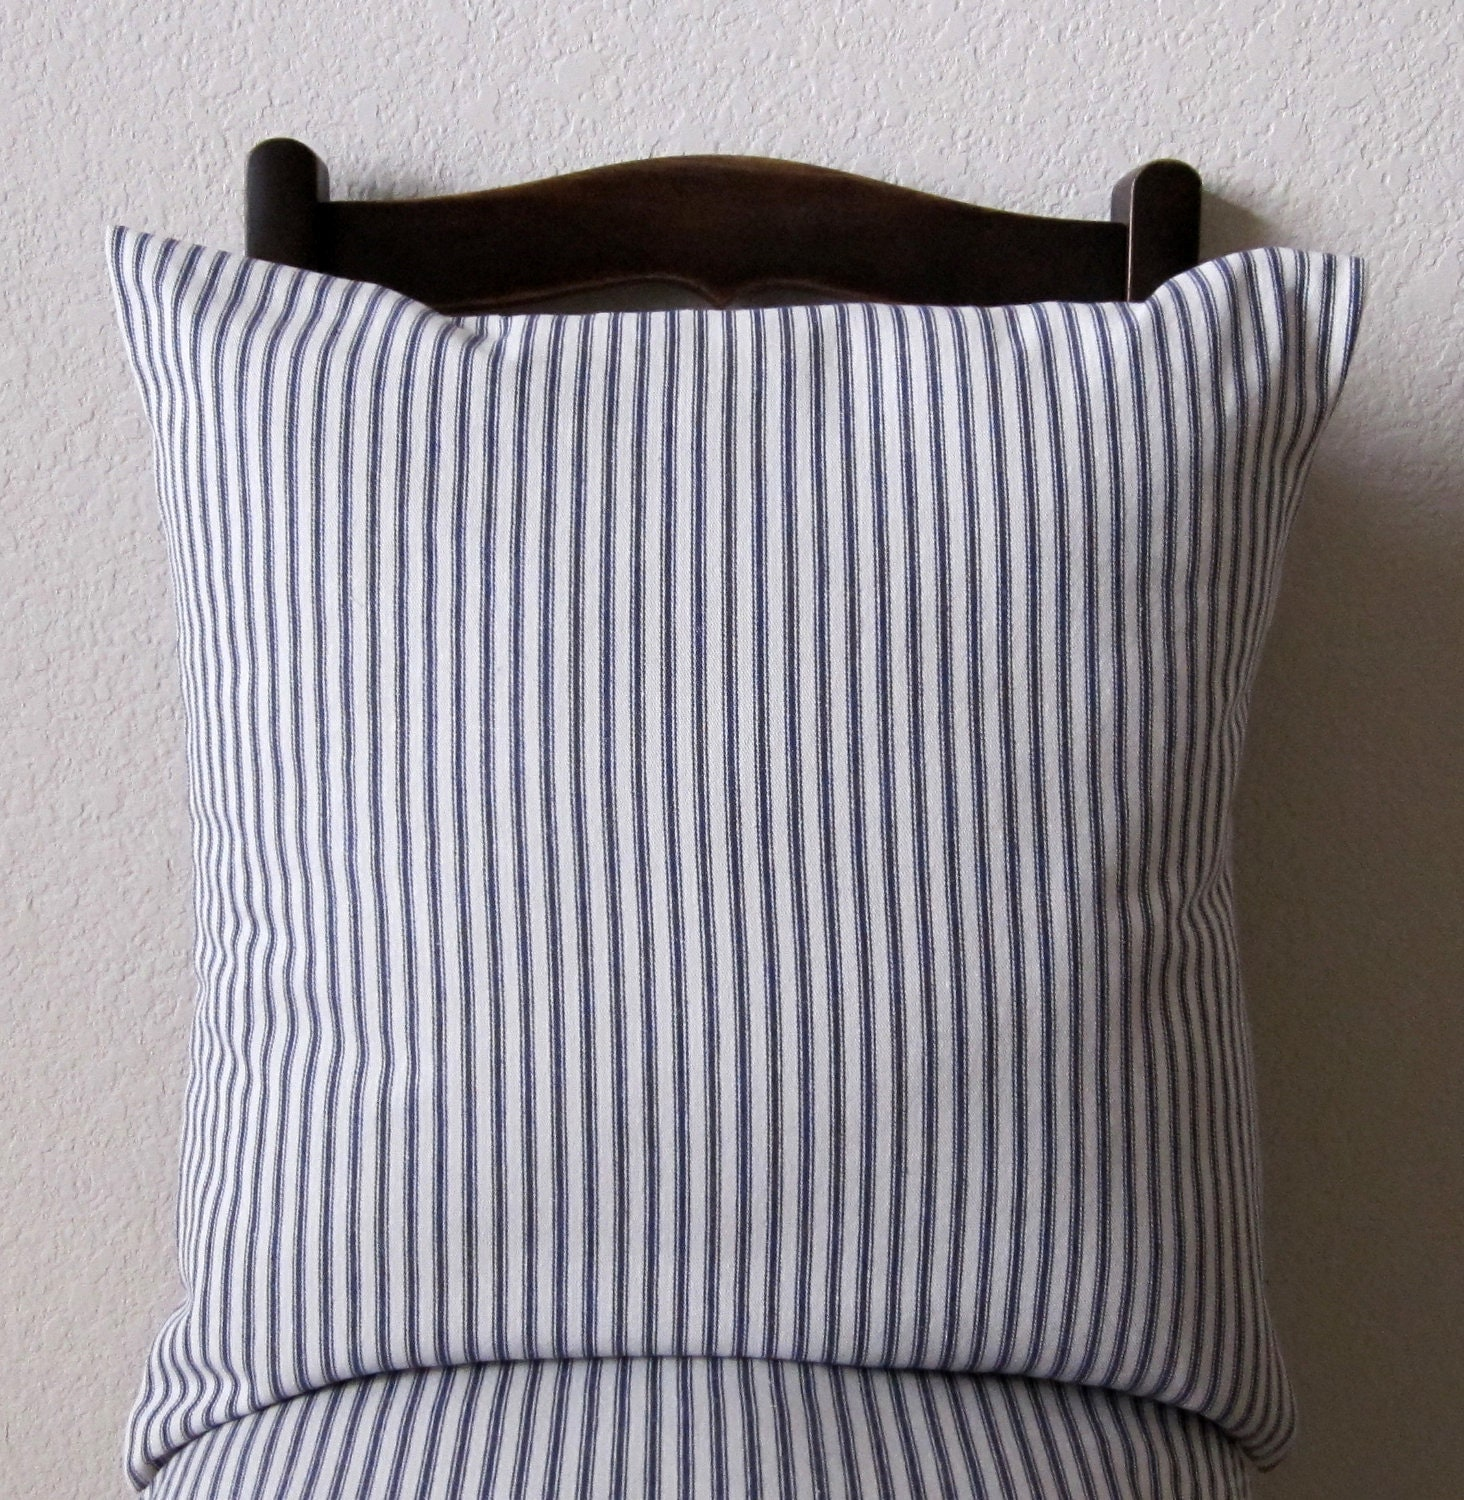 Blue Striped Throw Pillow Cover : Decorative Pillow Cover Blue Stripe Ticking Nautical Cotton